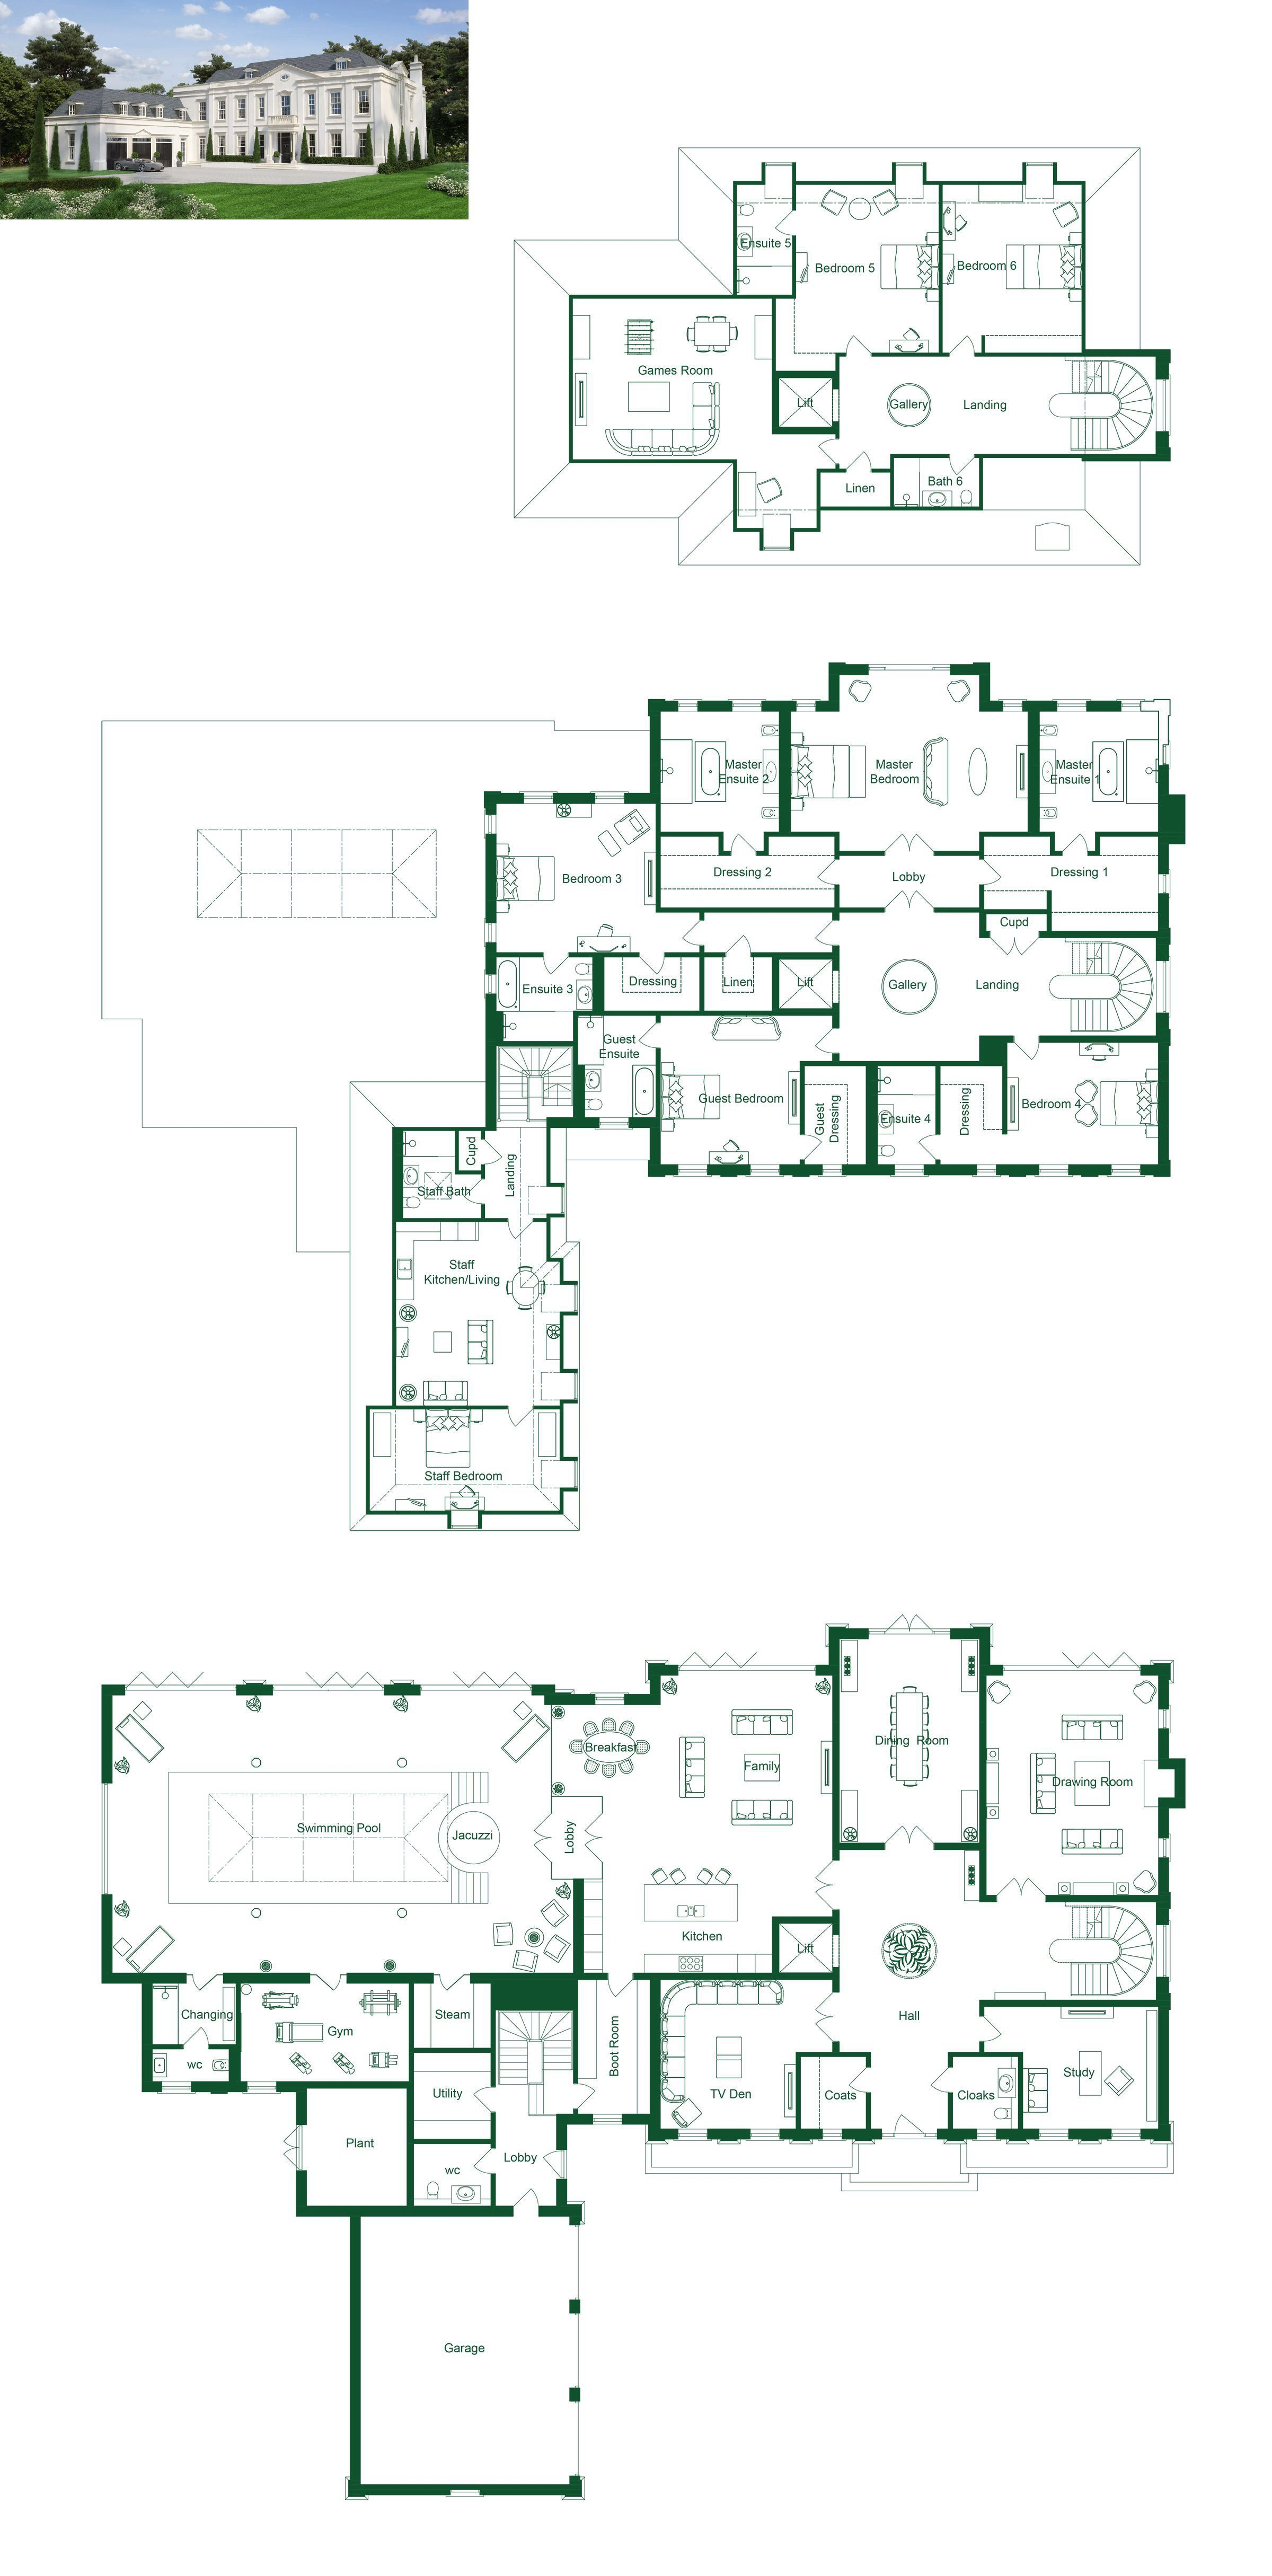 Google Image Result For Https I Pinimg Com Originals 4c 73 Dd 4c73ddfbbd7eb2a58eb0f13eeb0ba172 Jpg House Plans Mansion Mansion Floor Plan Large House Plans